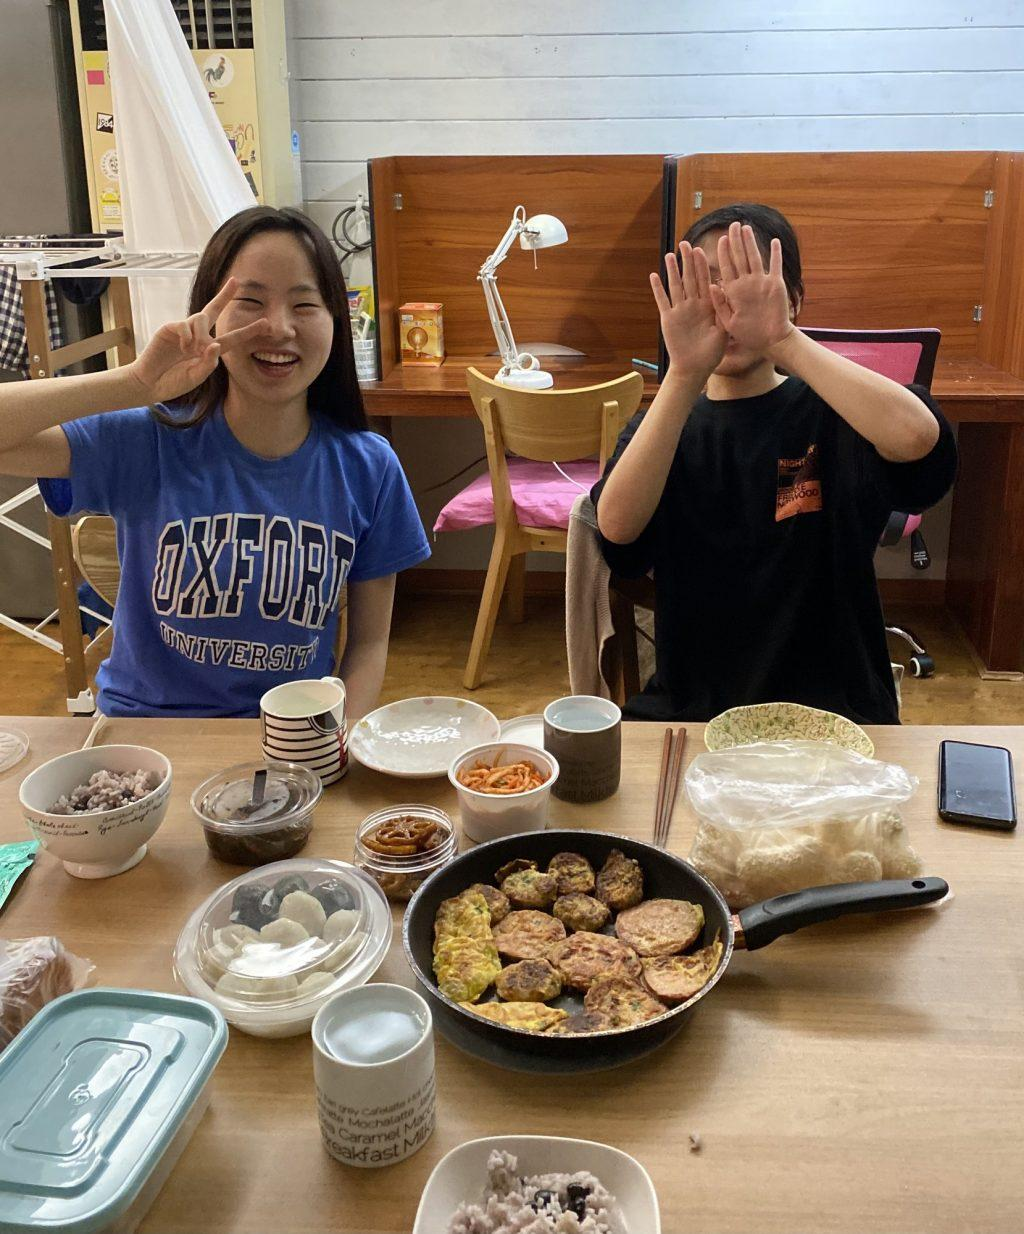 My two housemates and I share a Chuseok meal with Korean food and traditional rice cakes at our share house over the Chuseok holiday Oct 2. Our meal carried on for over two hours and was filled with an exchange of personal stories and cultural differences.